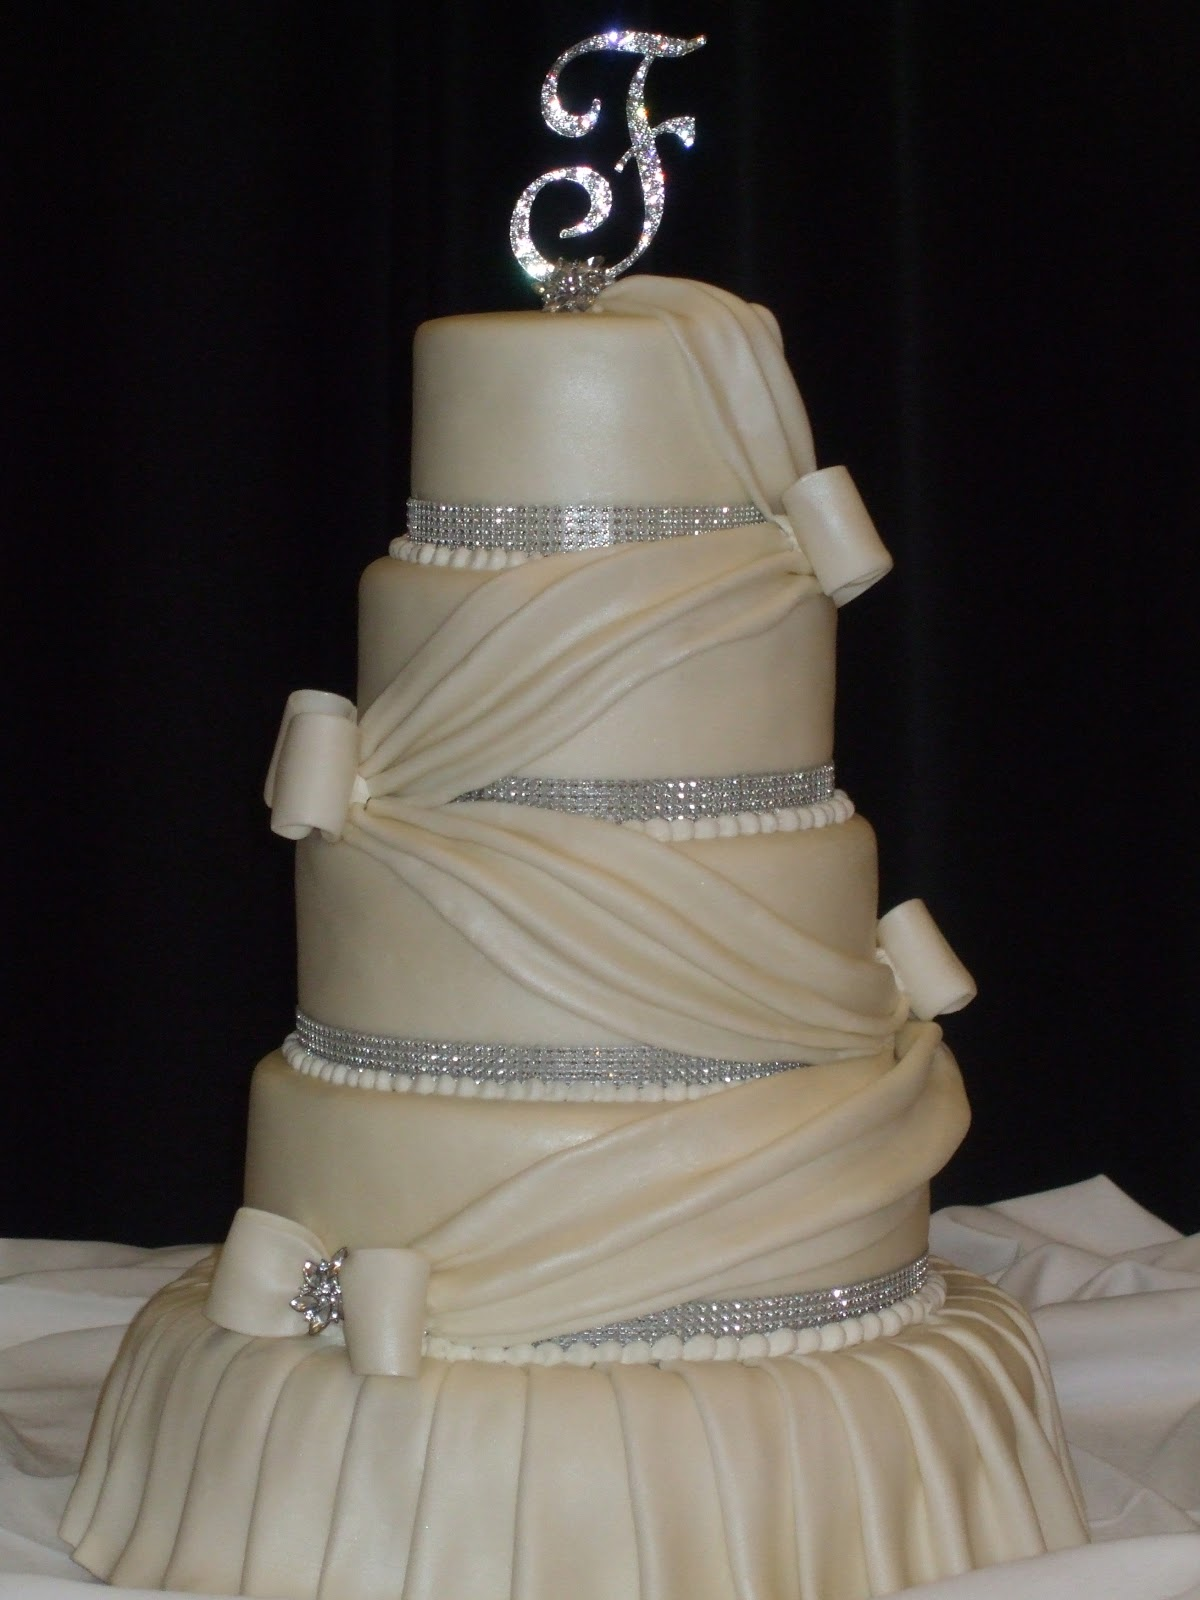 Cakes By Paula 5 Tier Wedding Cake